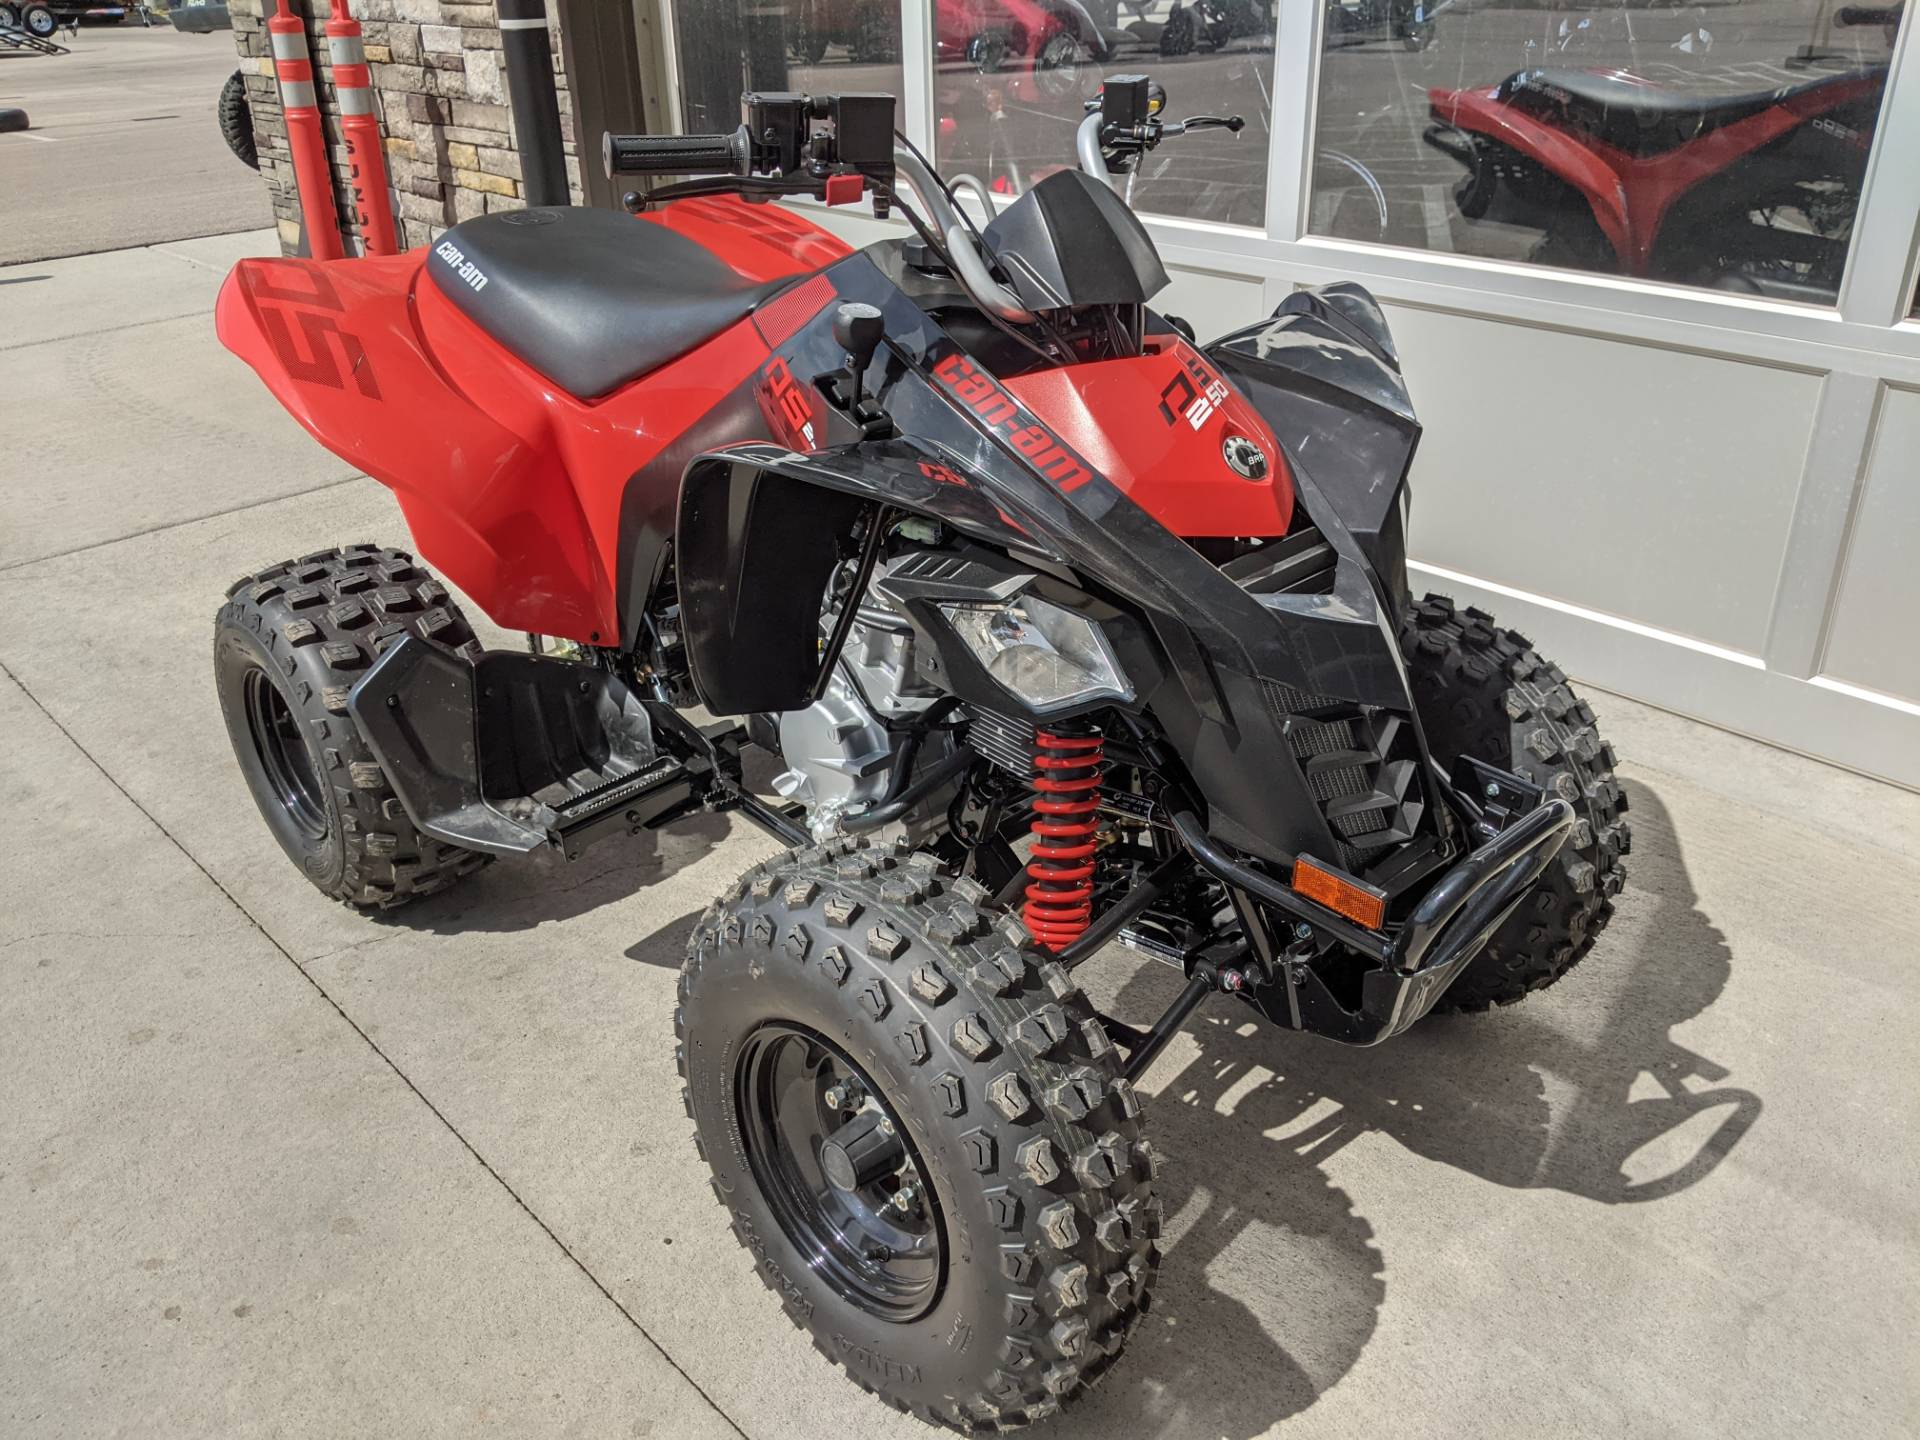 2021 Can-Am DS 250 in Rapid City, South Dakota - Photo 1